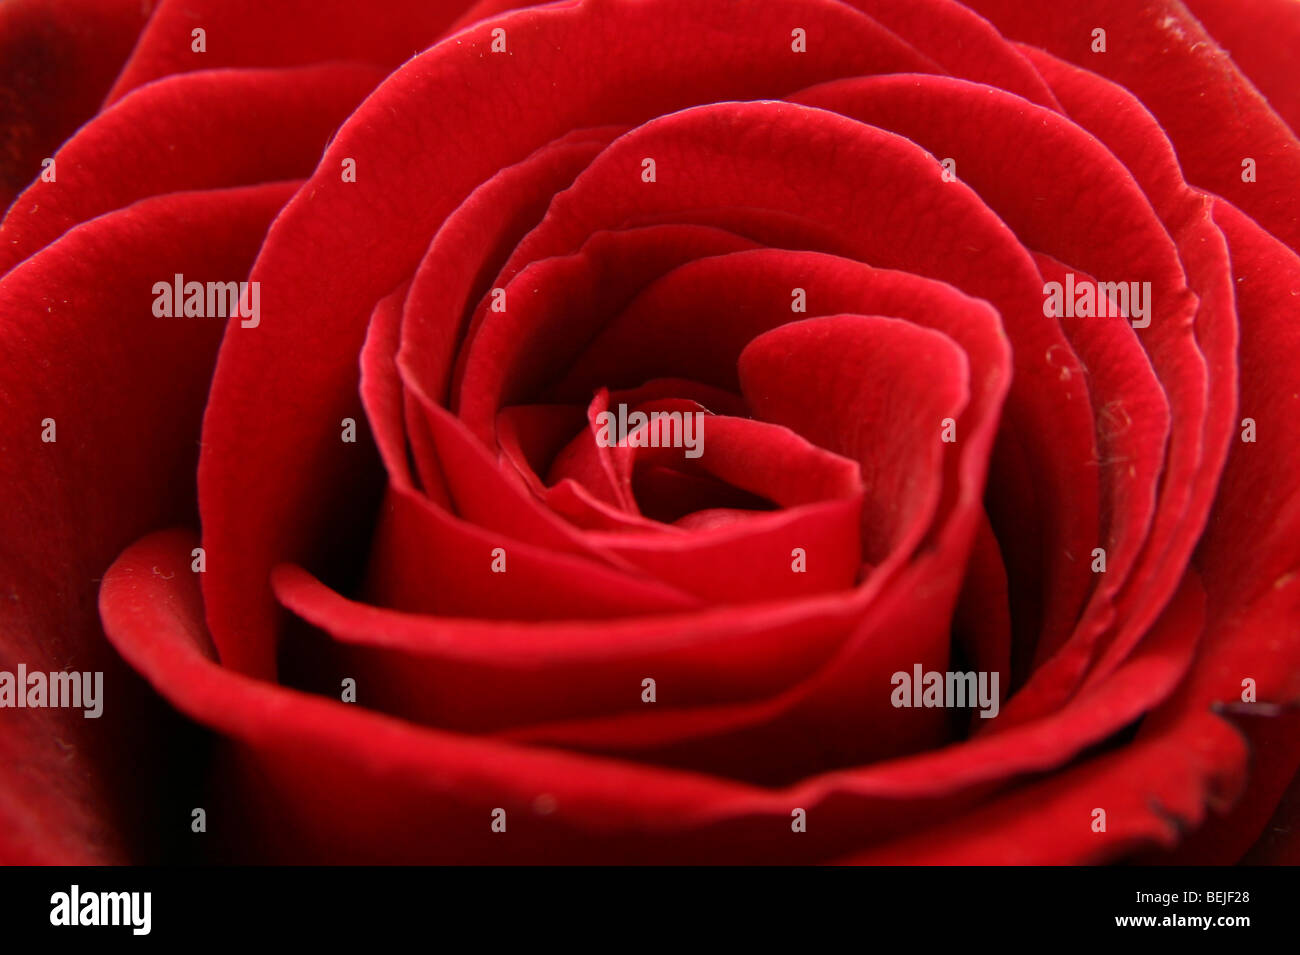 Close up of a beautiful red rose - Stock Image